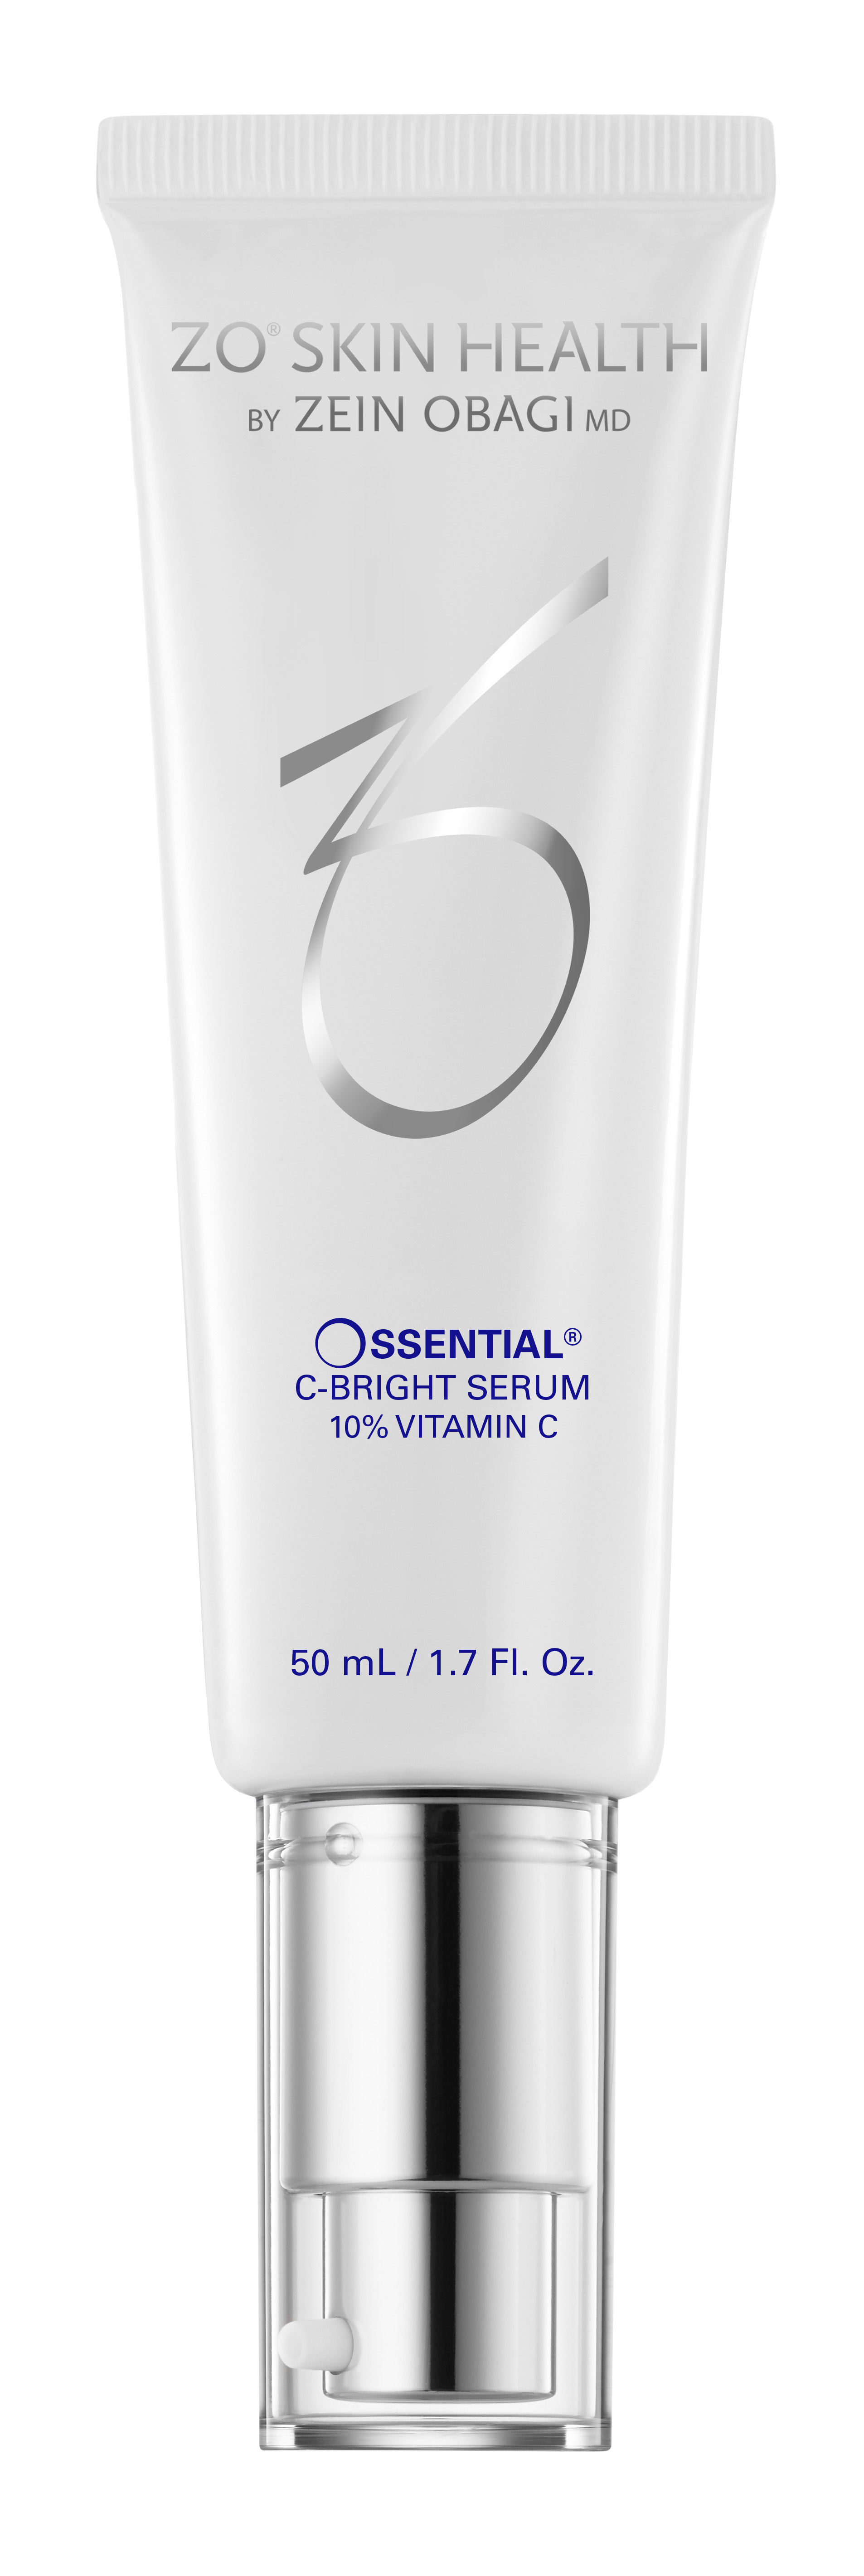 Ossential C-Bright Serum